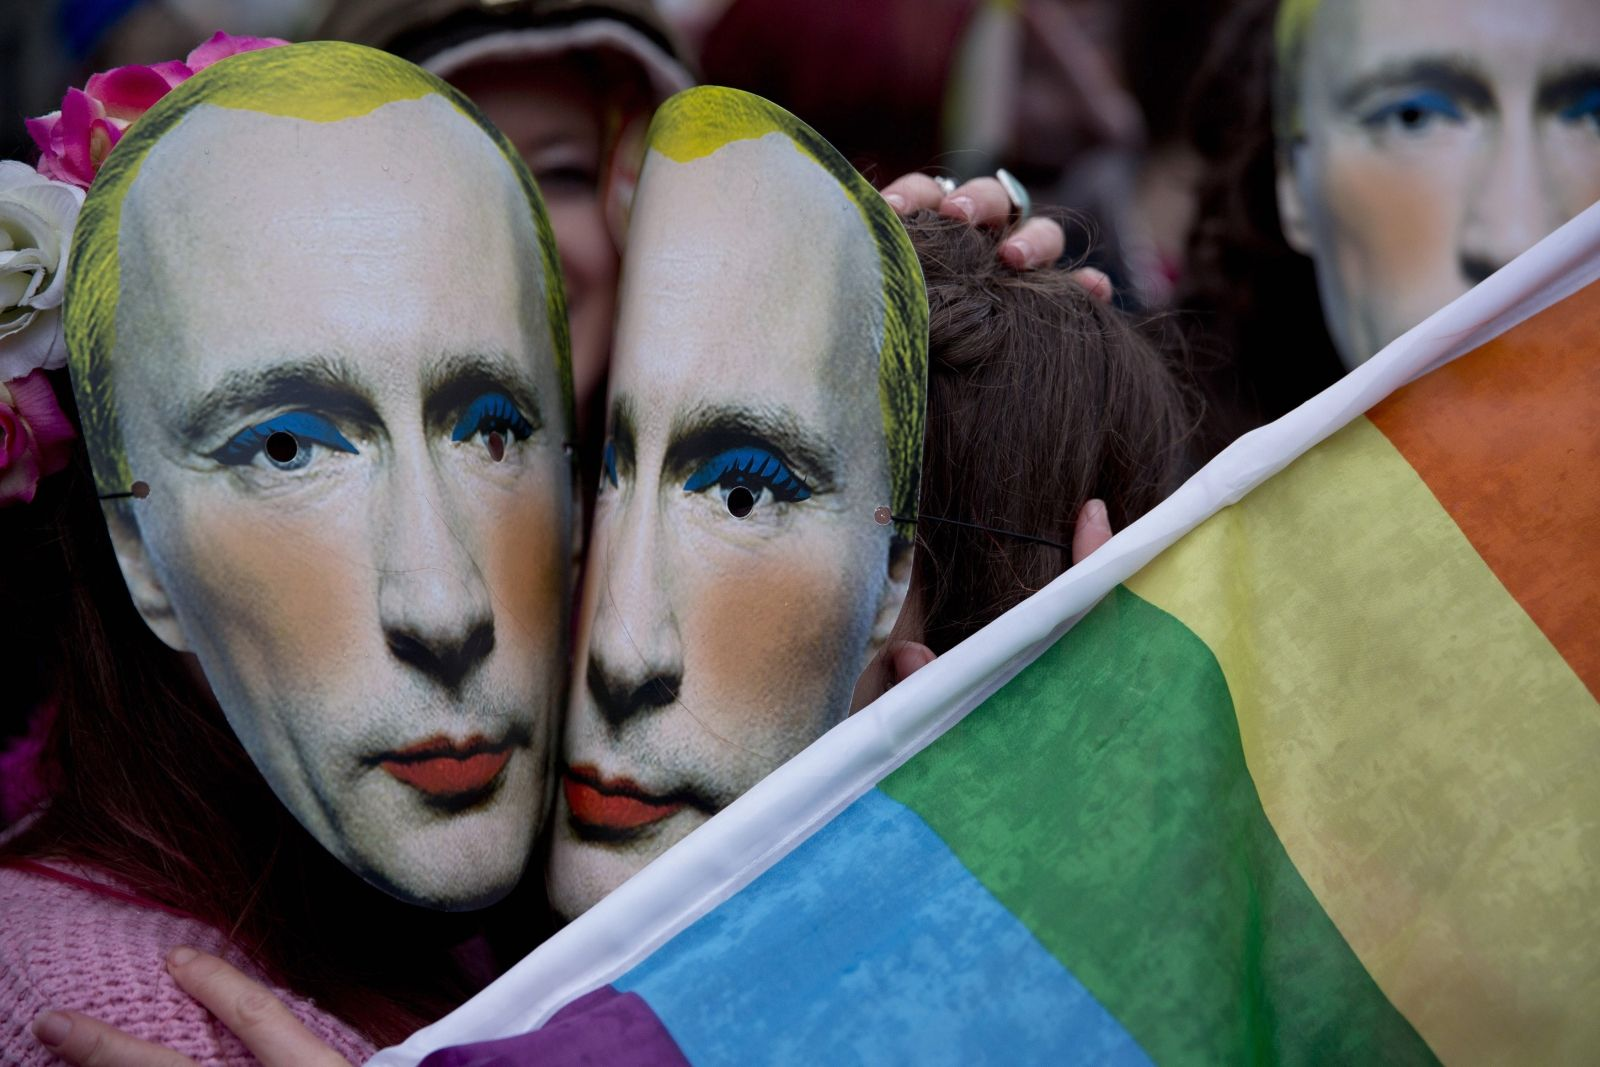 Gay Apple Emojis Investigated In Russia: Russia Could Ban 'Gay Emojis